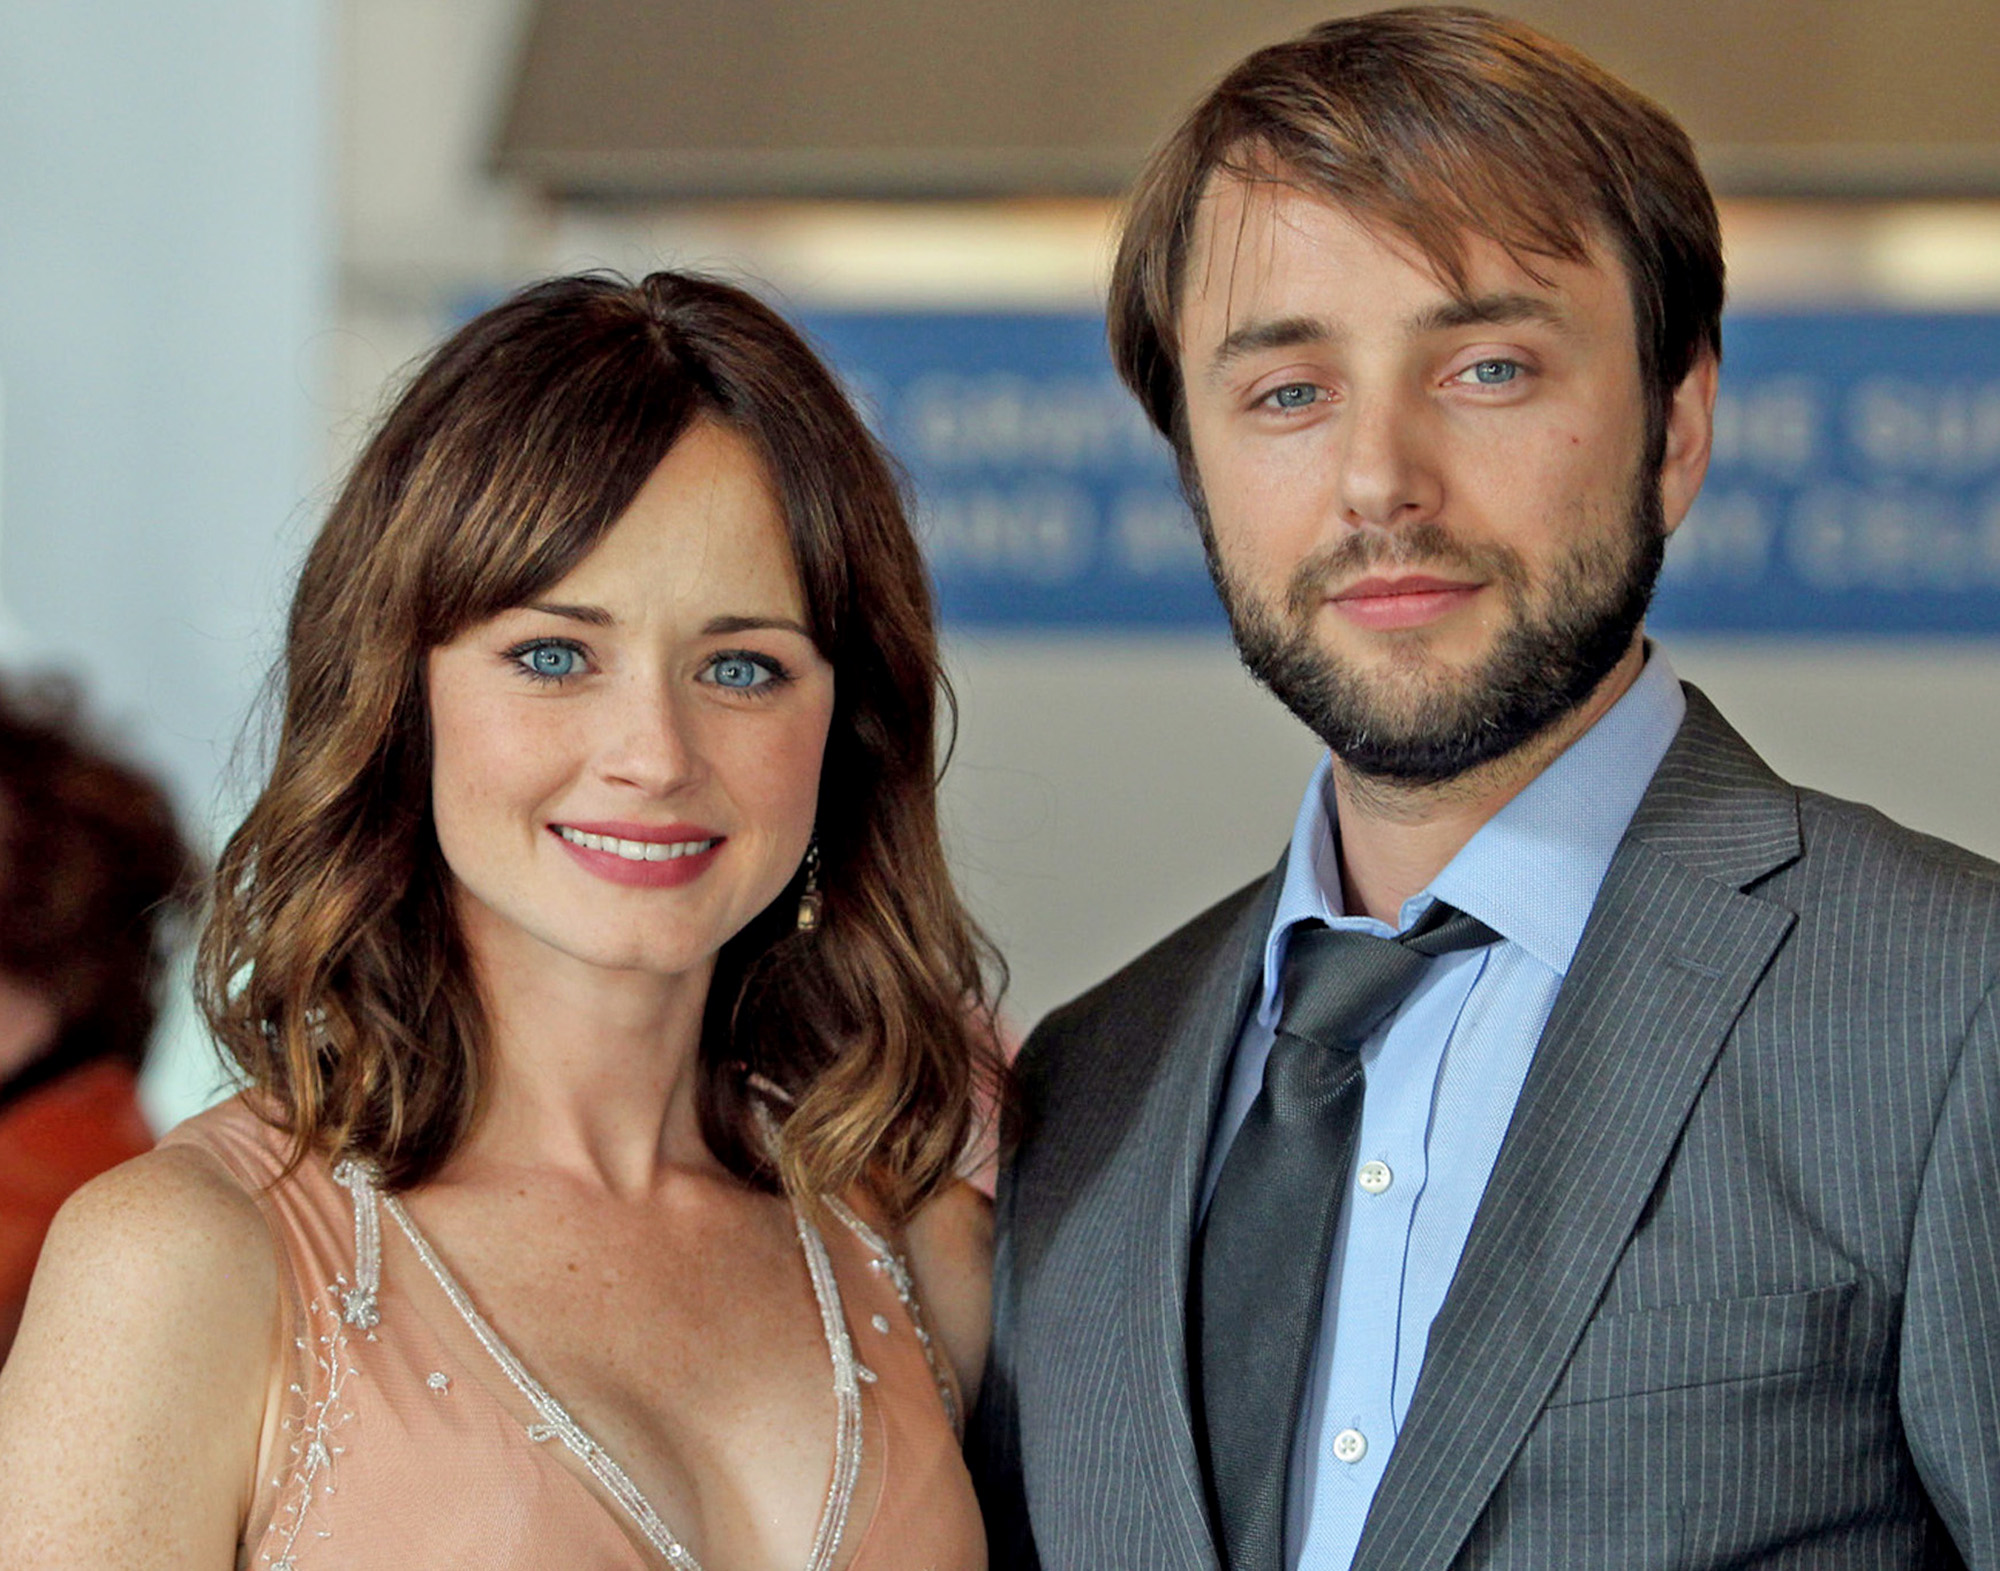 Alexis bledel dating mad men costar vincent kartheiser